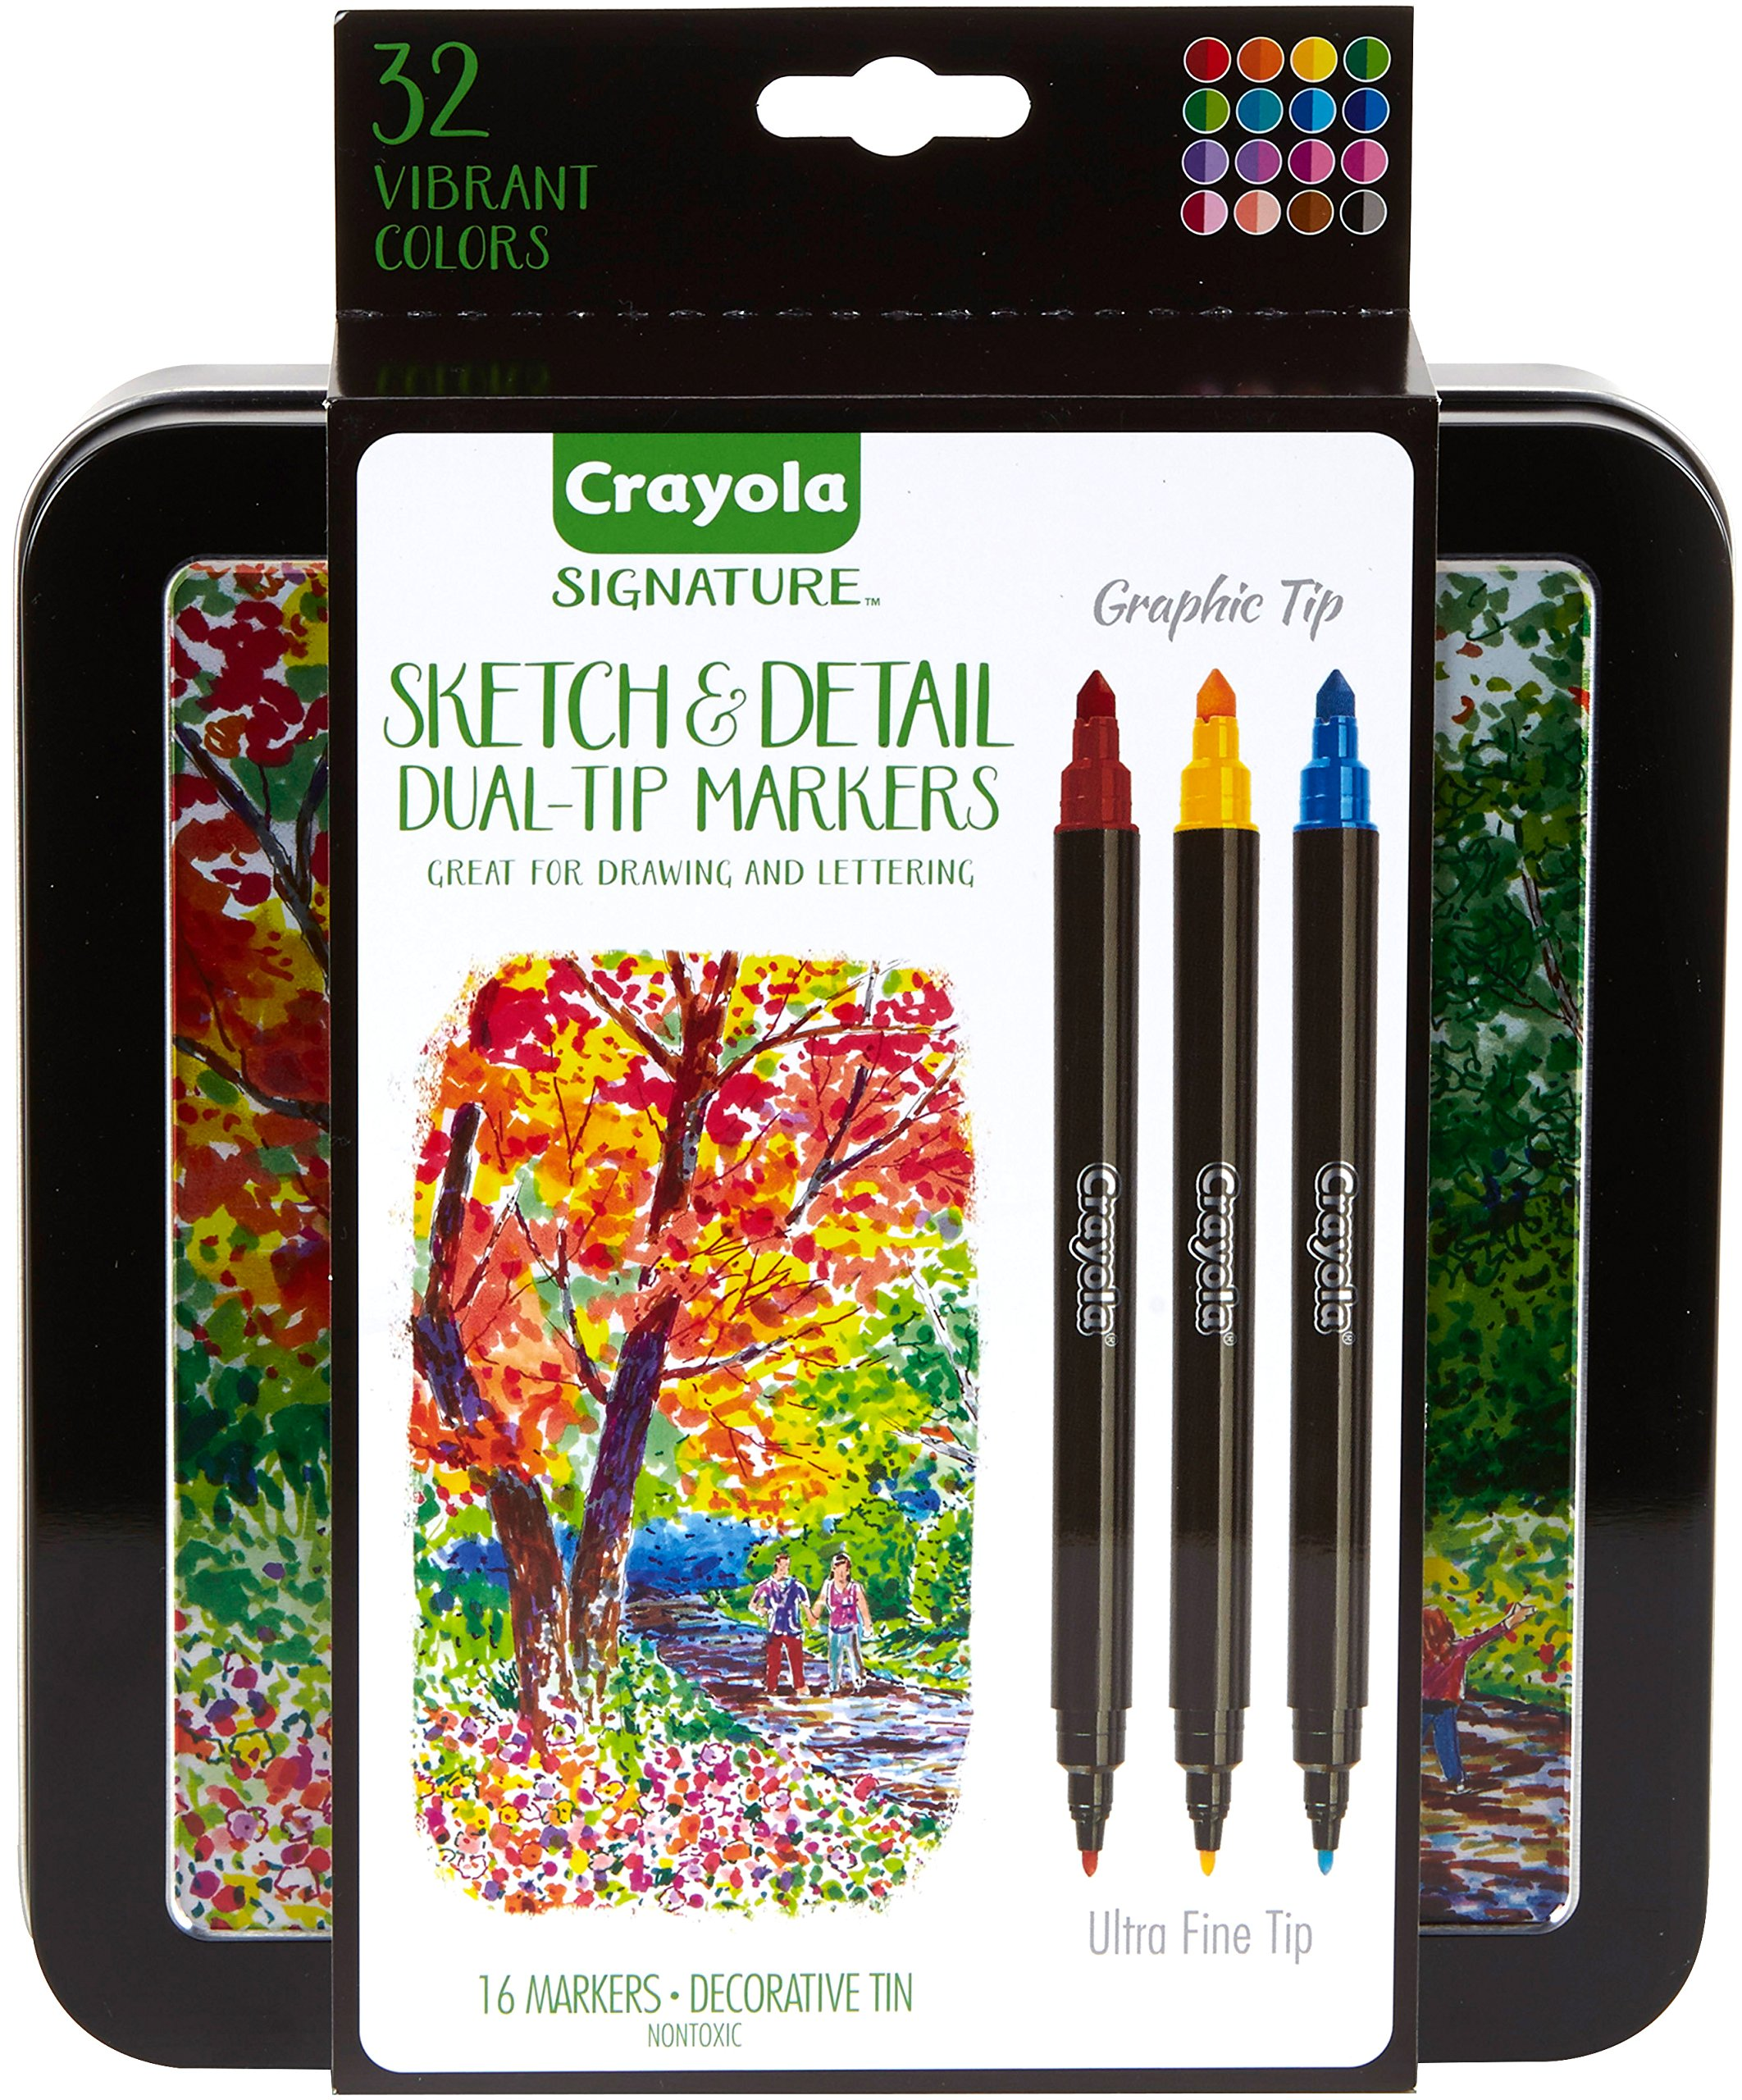 Crayola Sketch & Detail Dual-Tip Markers, 16Count, Gift